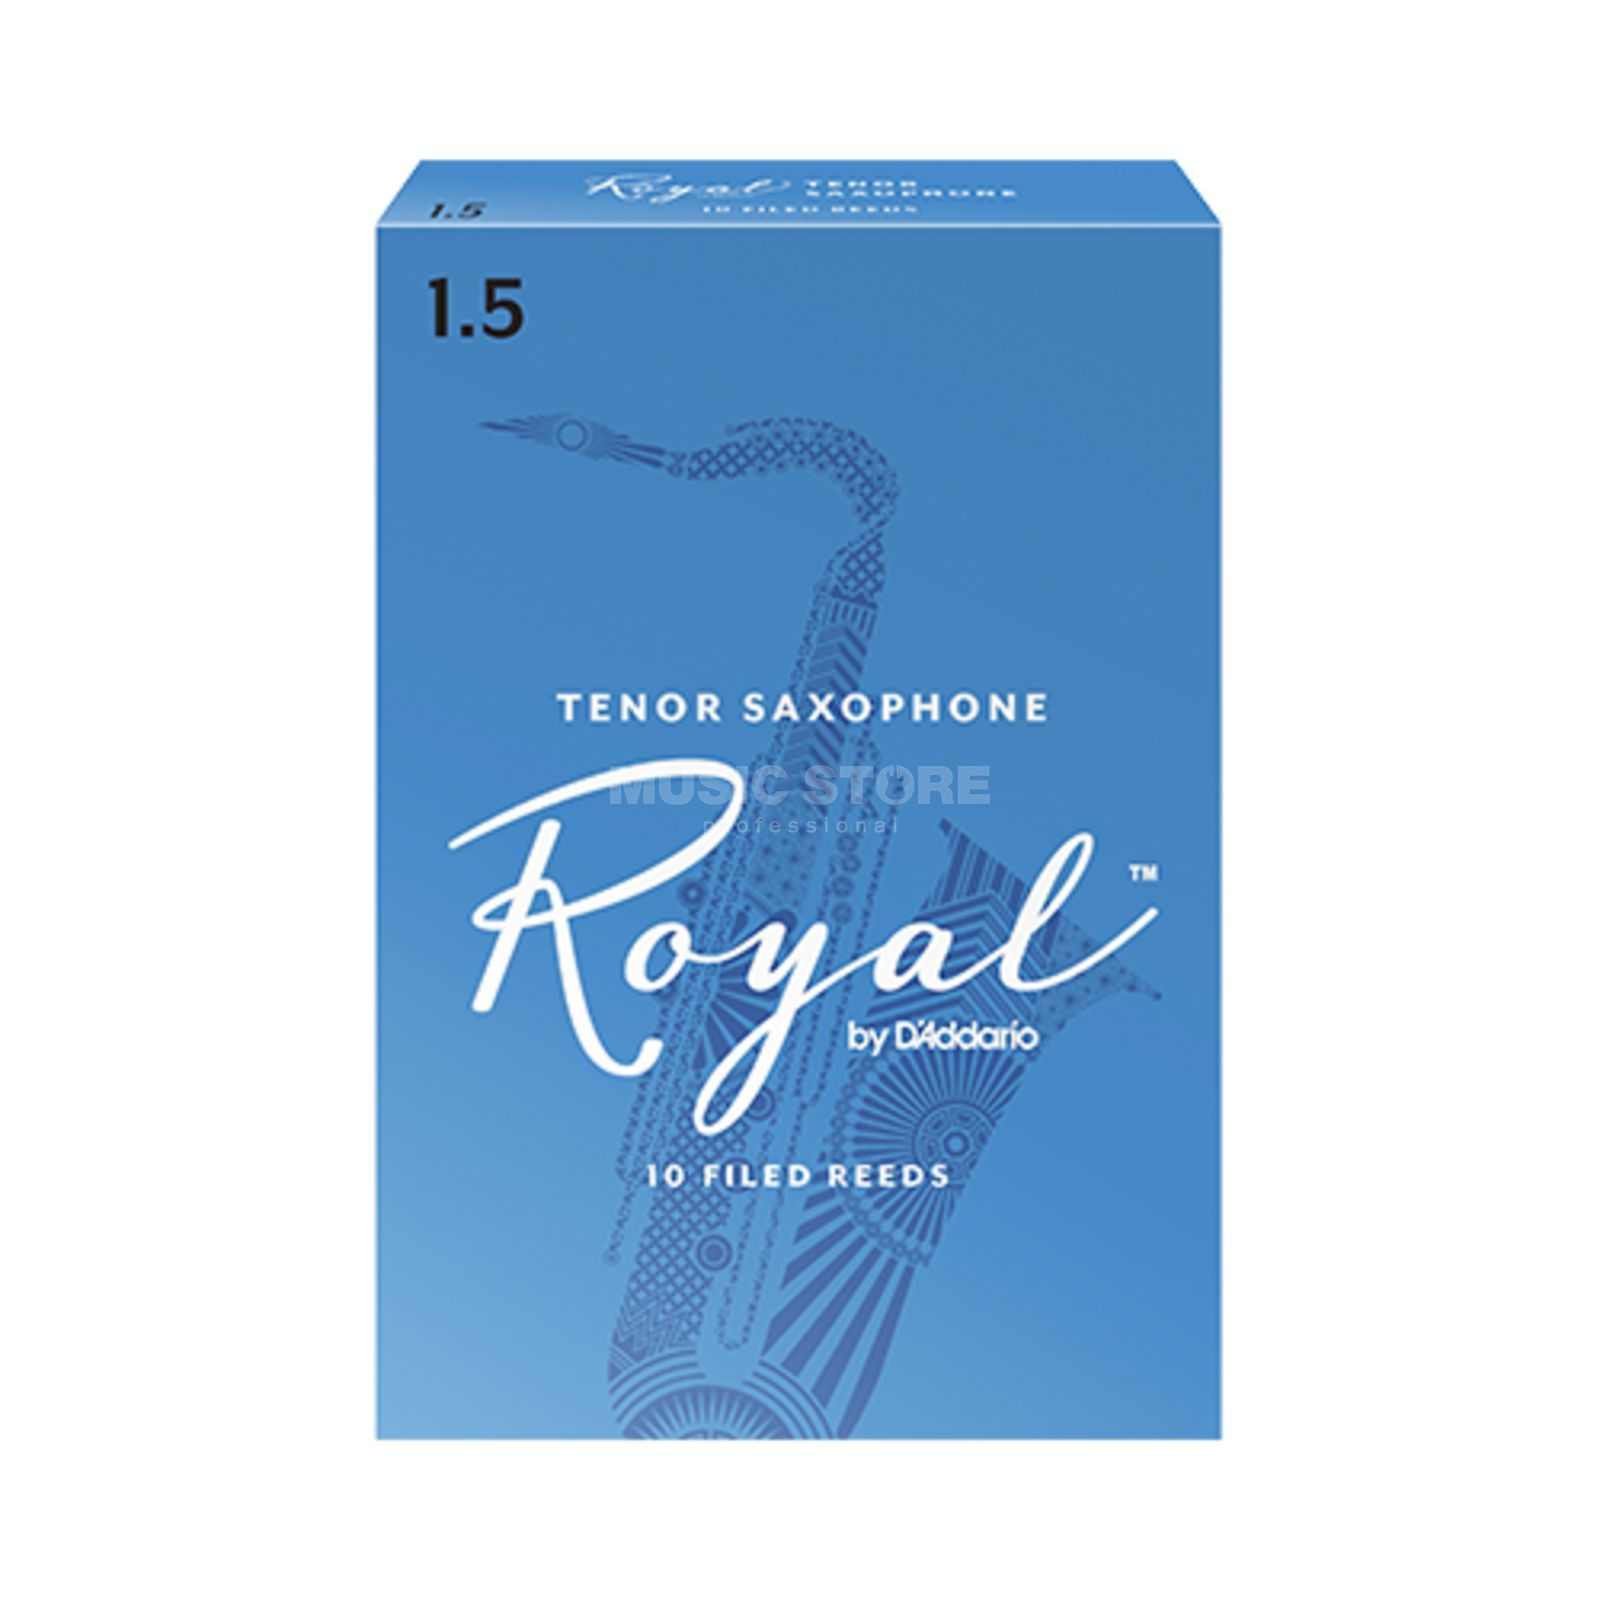 D'Addario Woodwinds Rico Royal 1.5 Tenor Saxophone Reeds Box of 10 Produktbillede